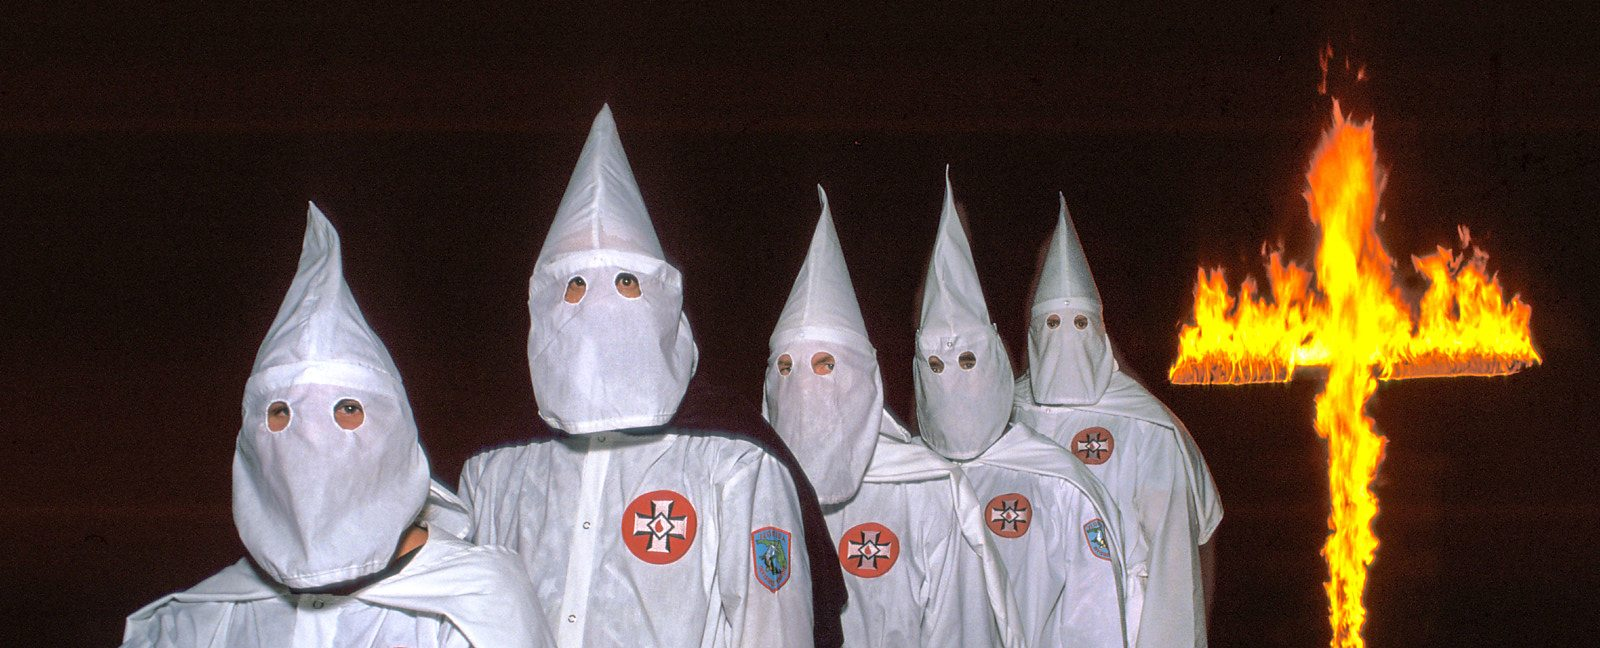 Bbc iwonder were scots responsible for the ku klux klan presented byneil oliverhistorian biocorpaavc Images